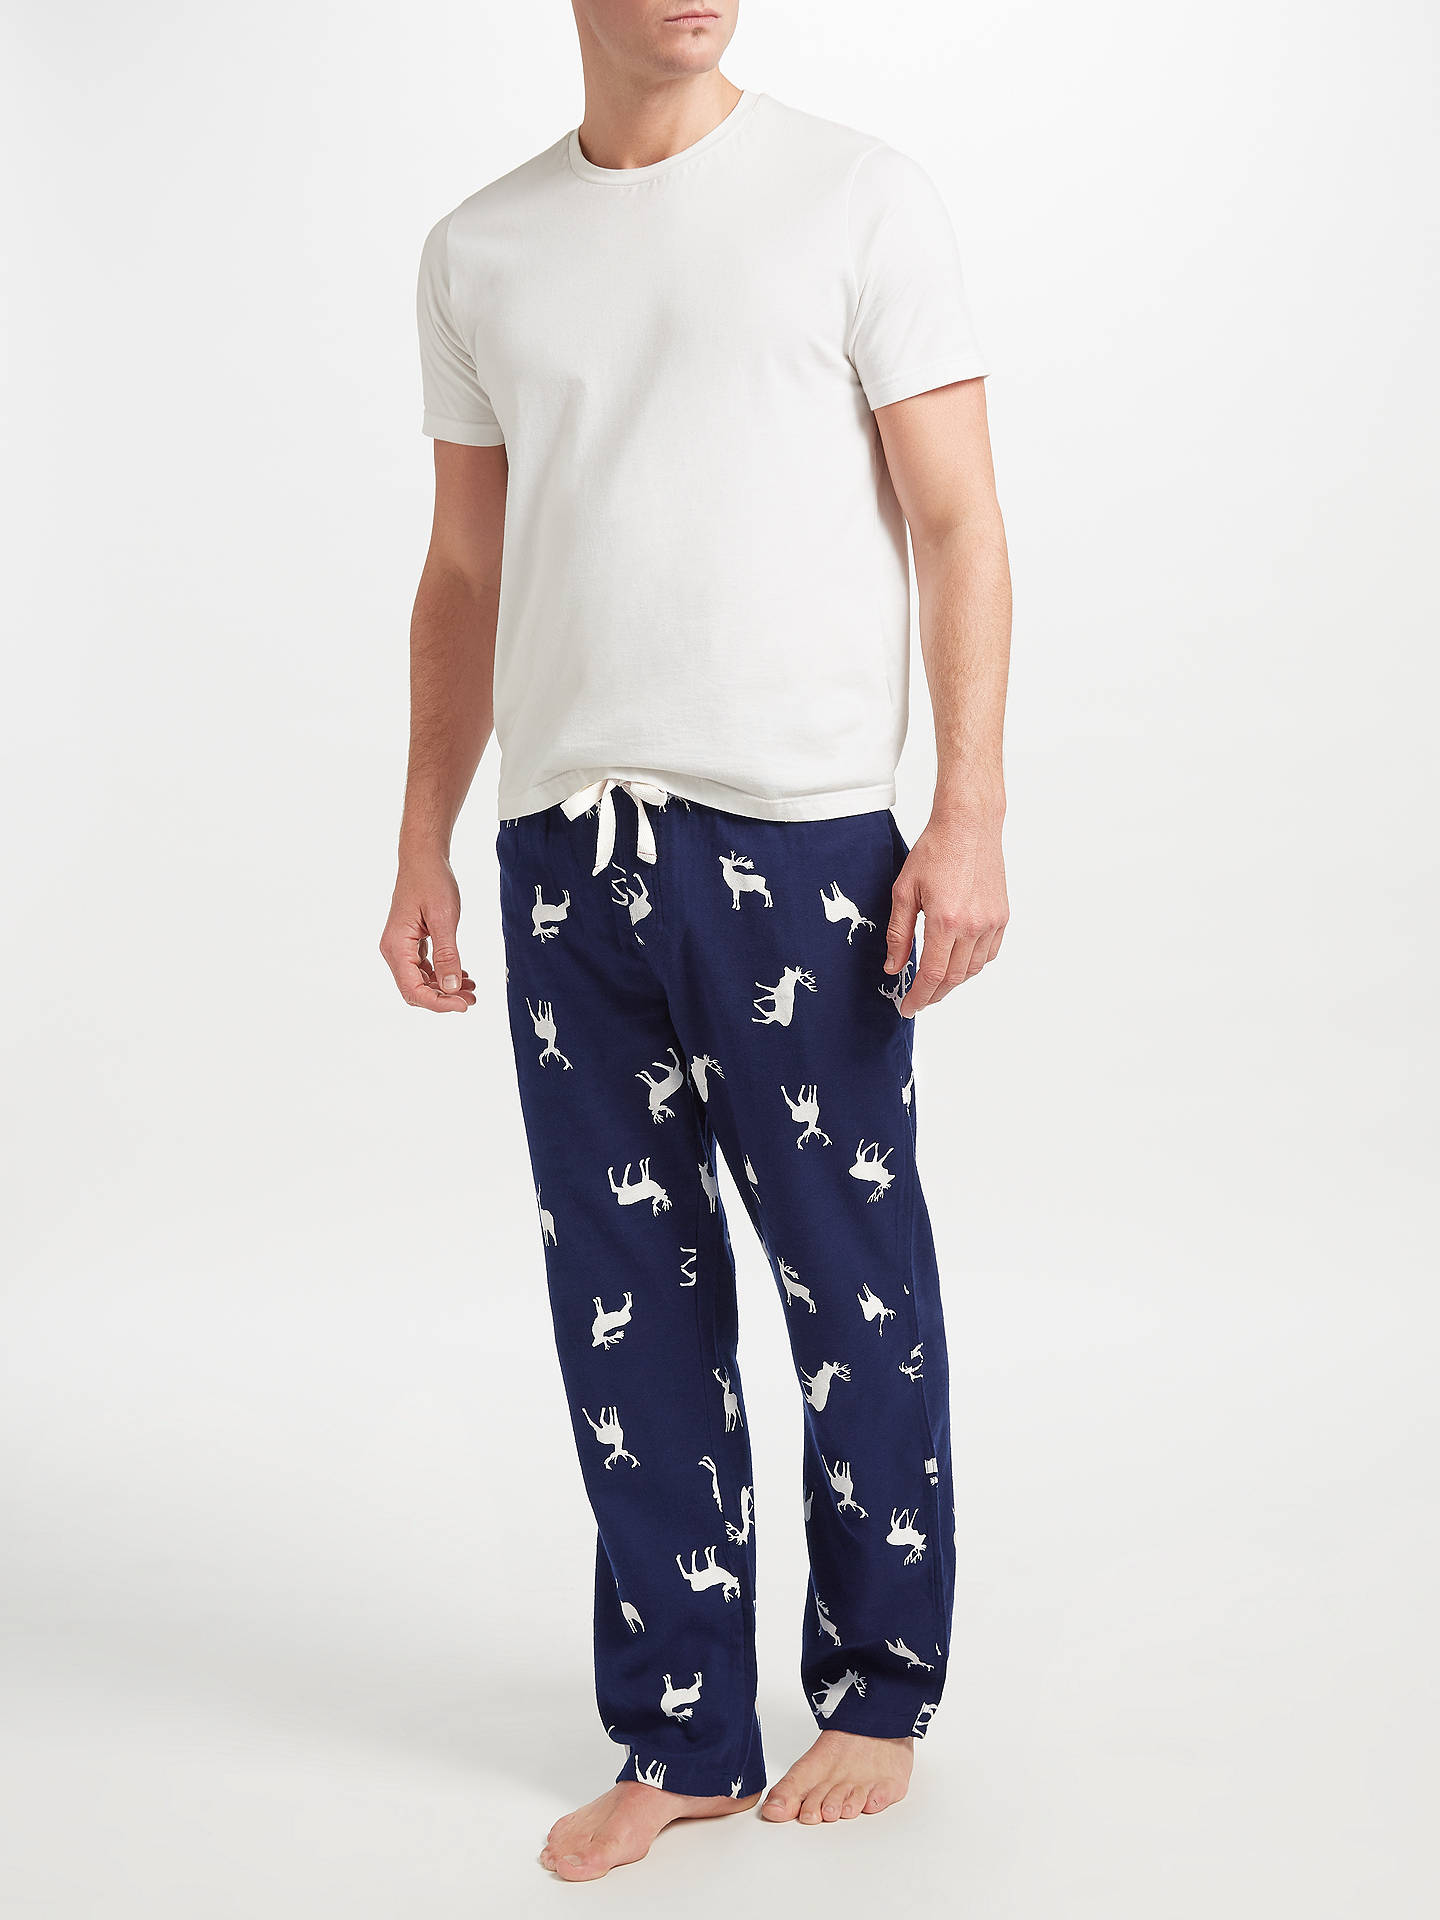 BuyJohn Lewis Stag Print Brushed Lounge Pants, Blue, S Online at johnlewis.com